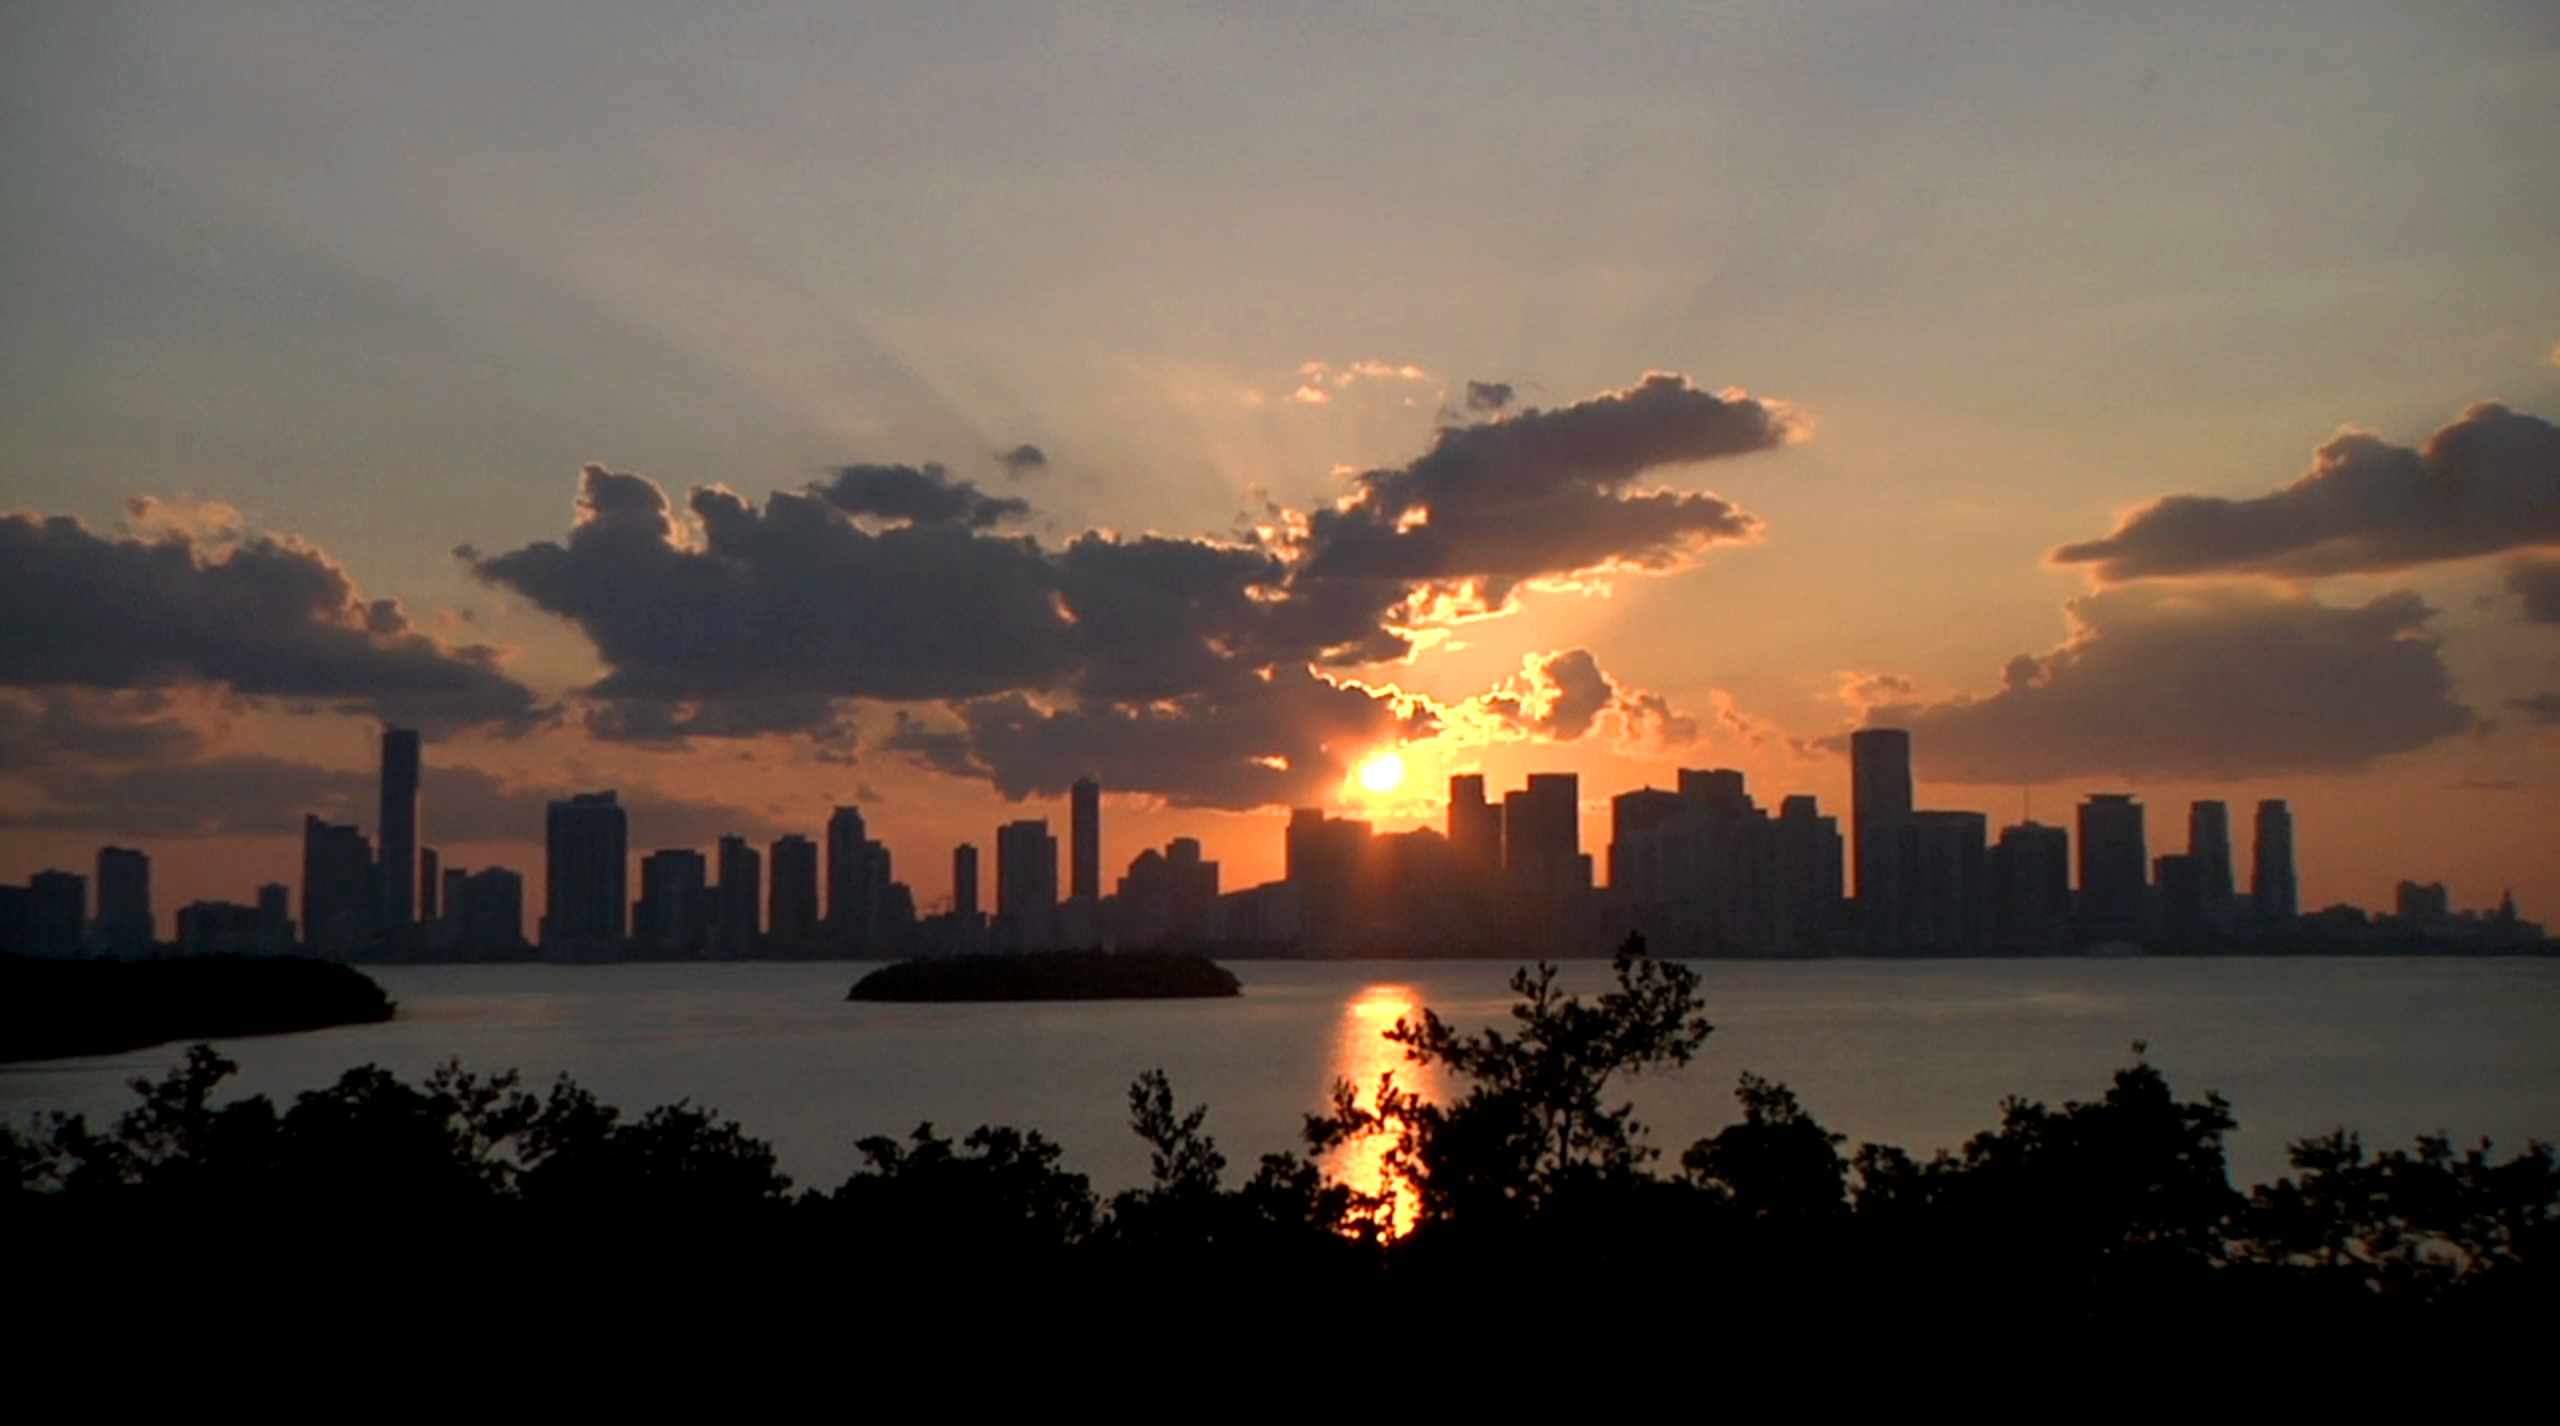 Shooting A Sunset Time Lapse Of The Miami Skyline Gotta Love This Town Accommovision